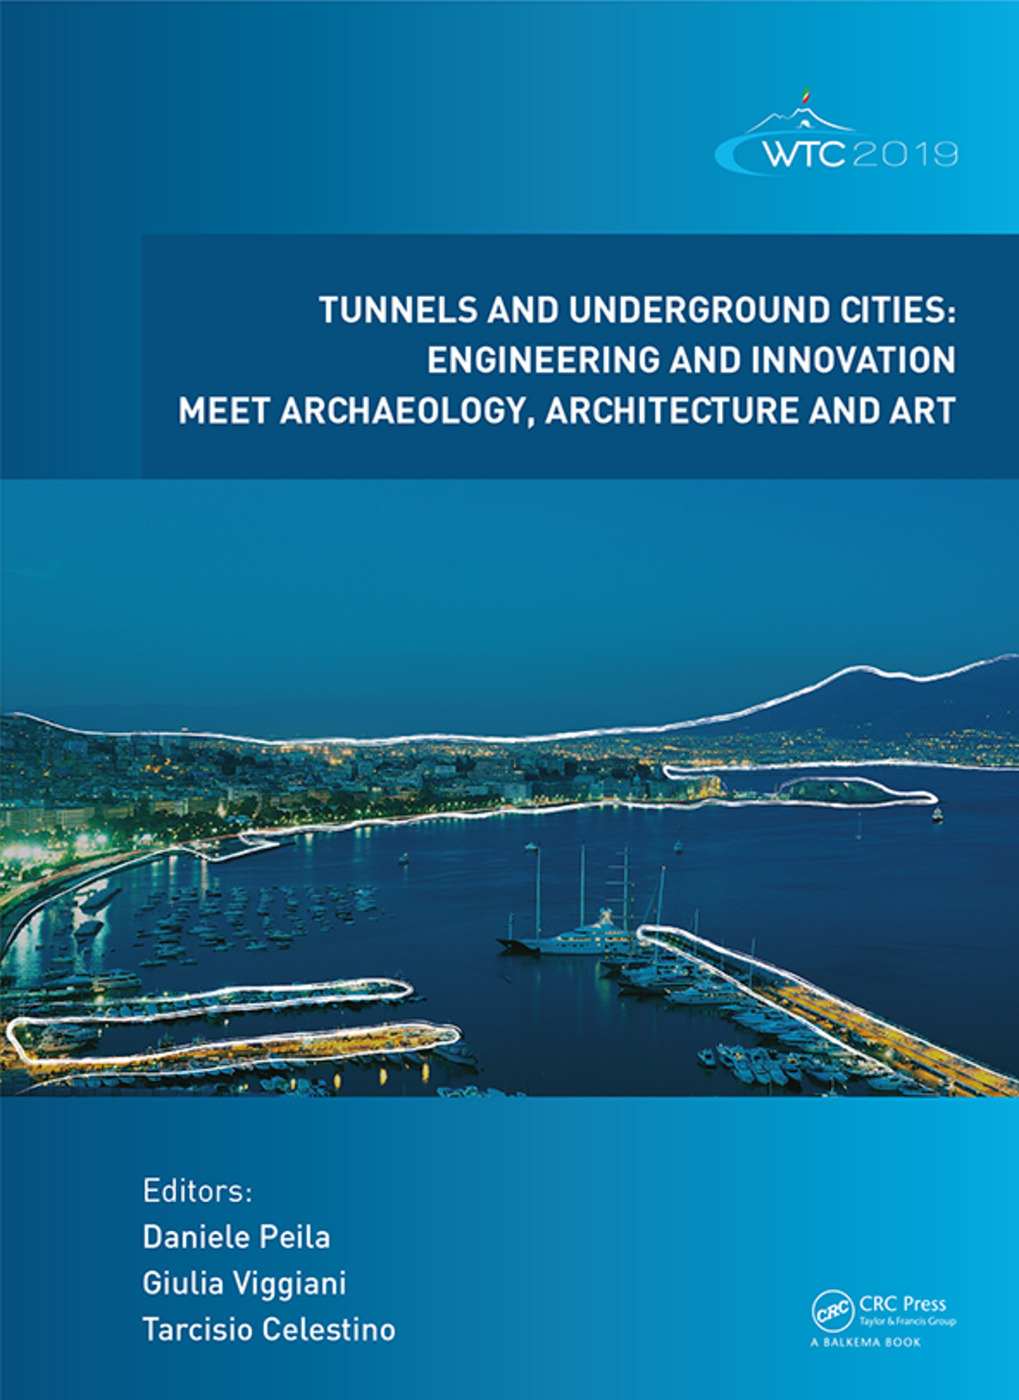 Northeast Boundary Tunnel: Applied lessons learned from the Anacostia River Tunnel Project, Washington, USA